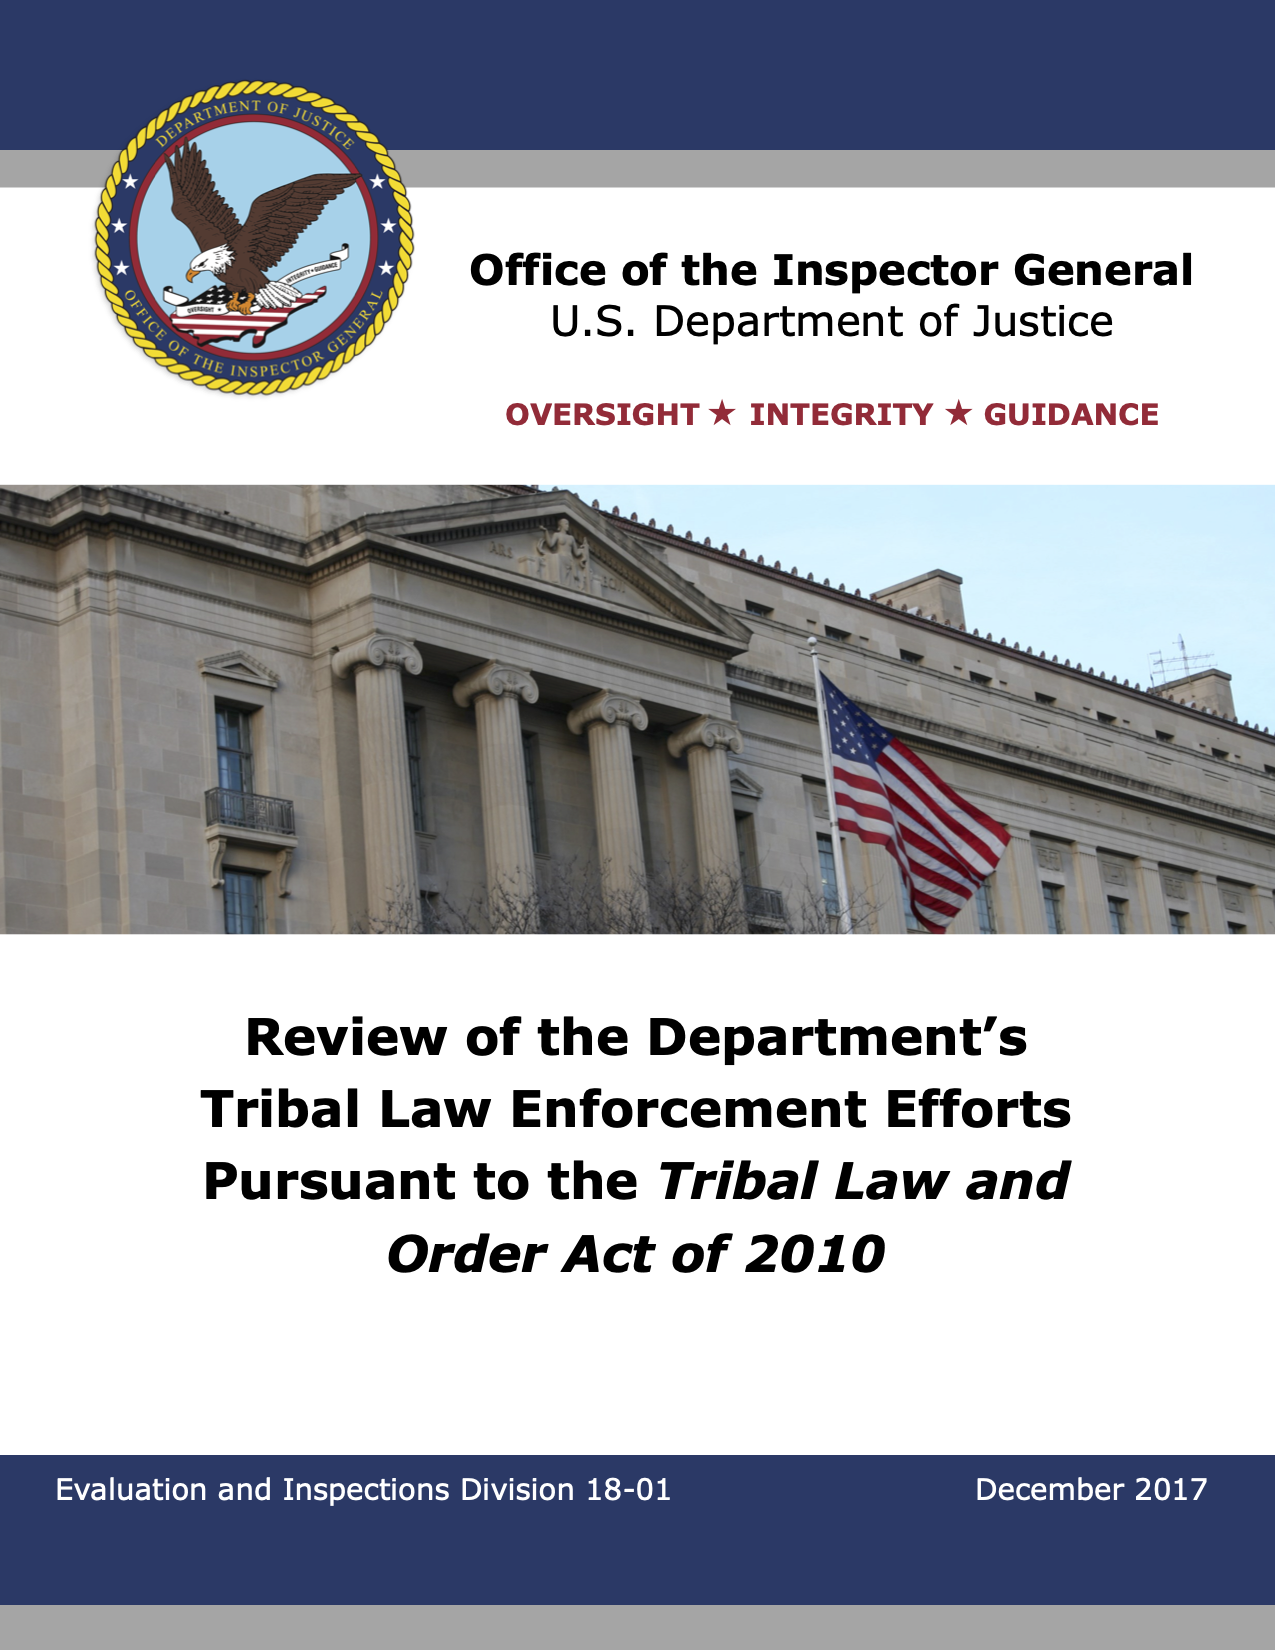 Review of the Department's Tribal Law Enforcement Efforts Pursuant to the Tribal Law and Order Act of 2010